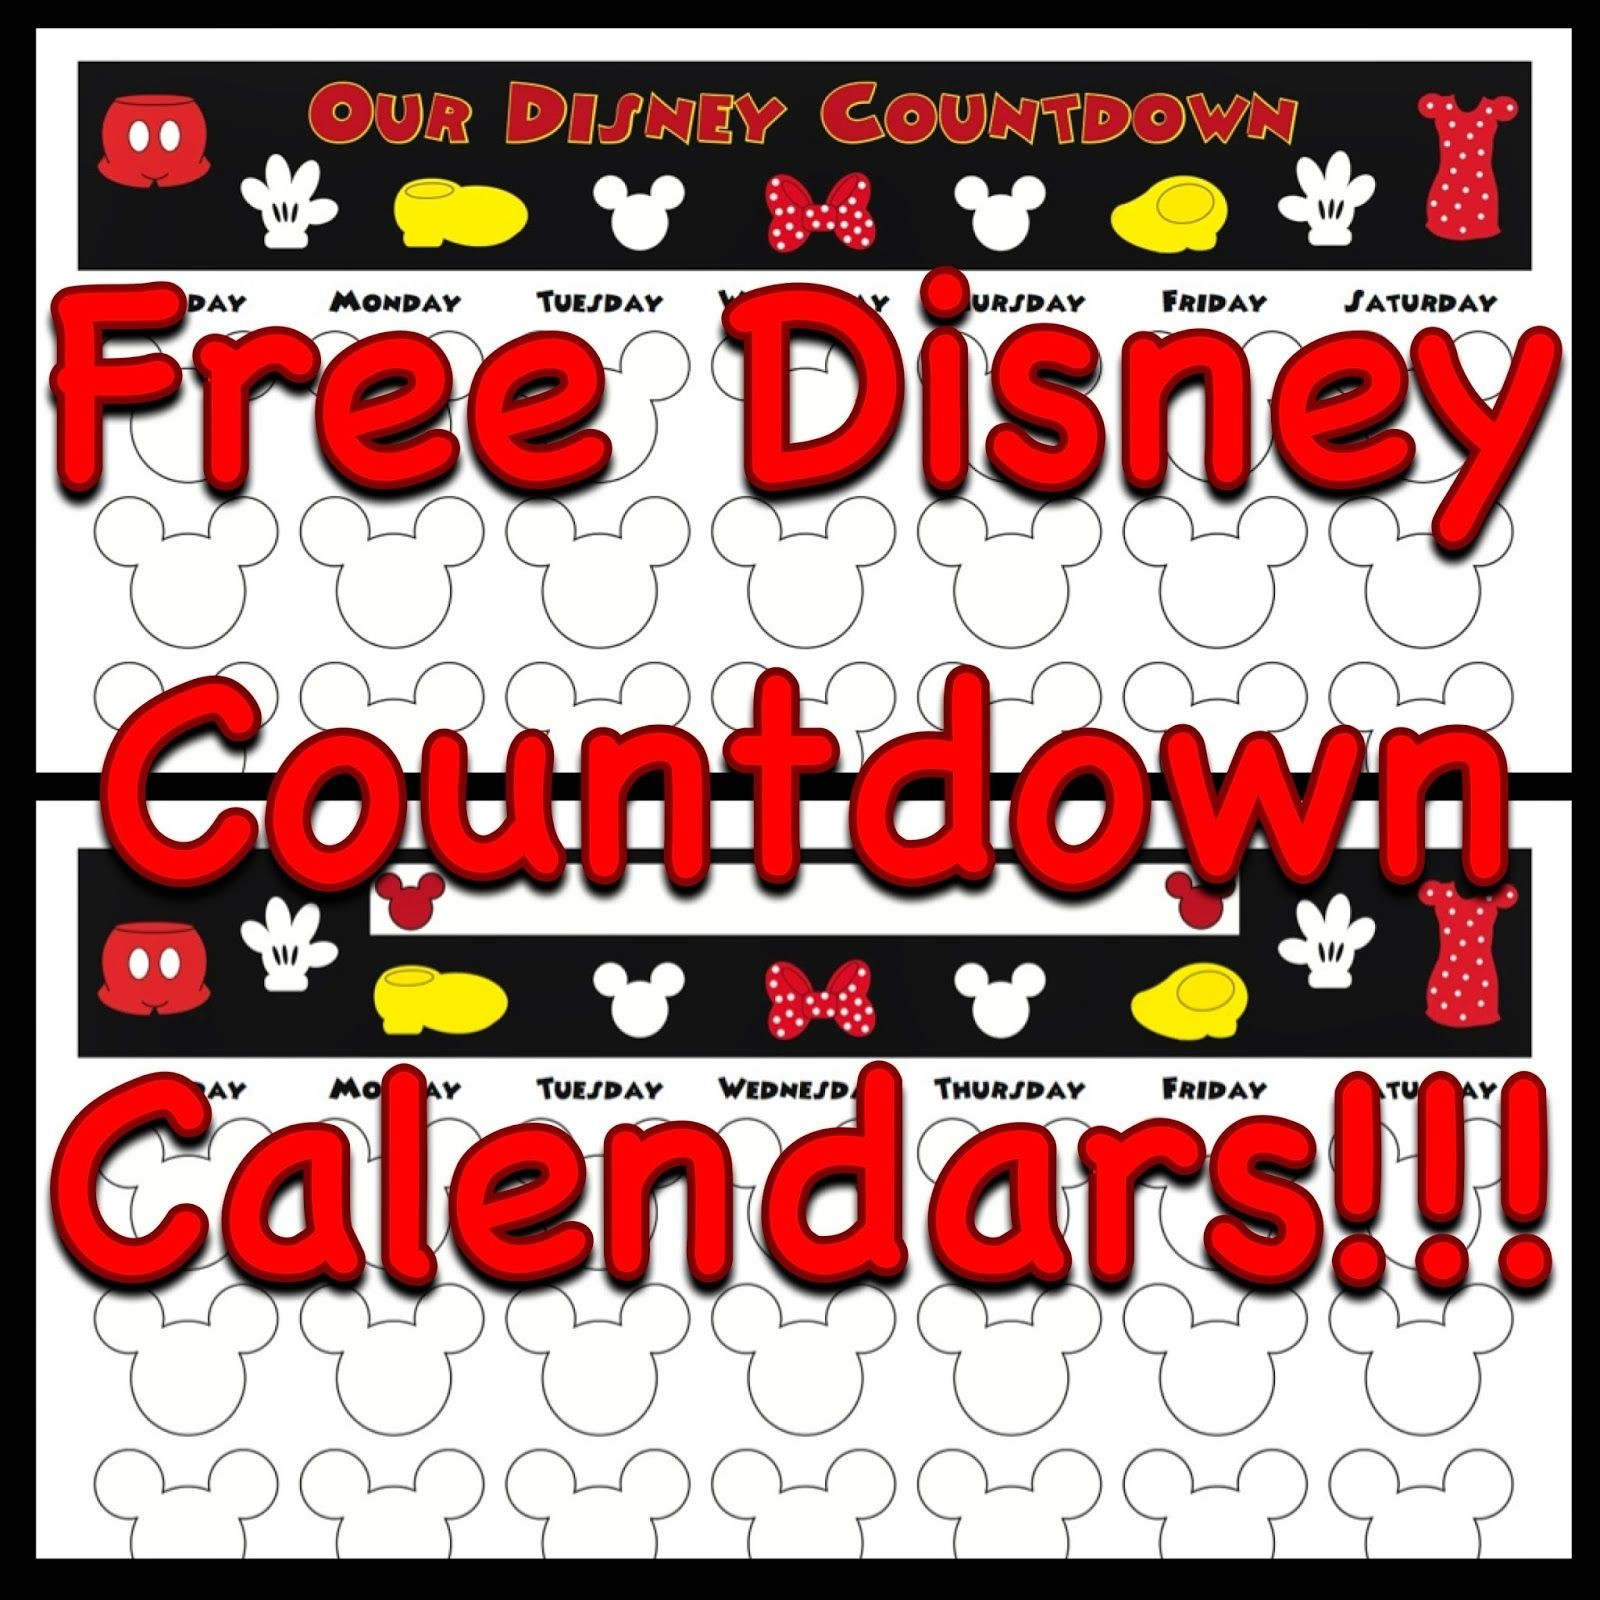 Free, Printable Countdown Calendars To Use For Your Next-Template Countdown Calendar Disney